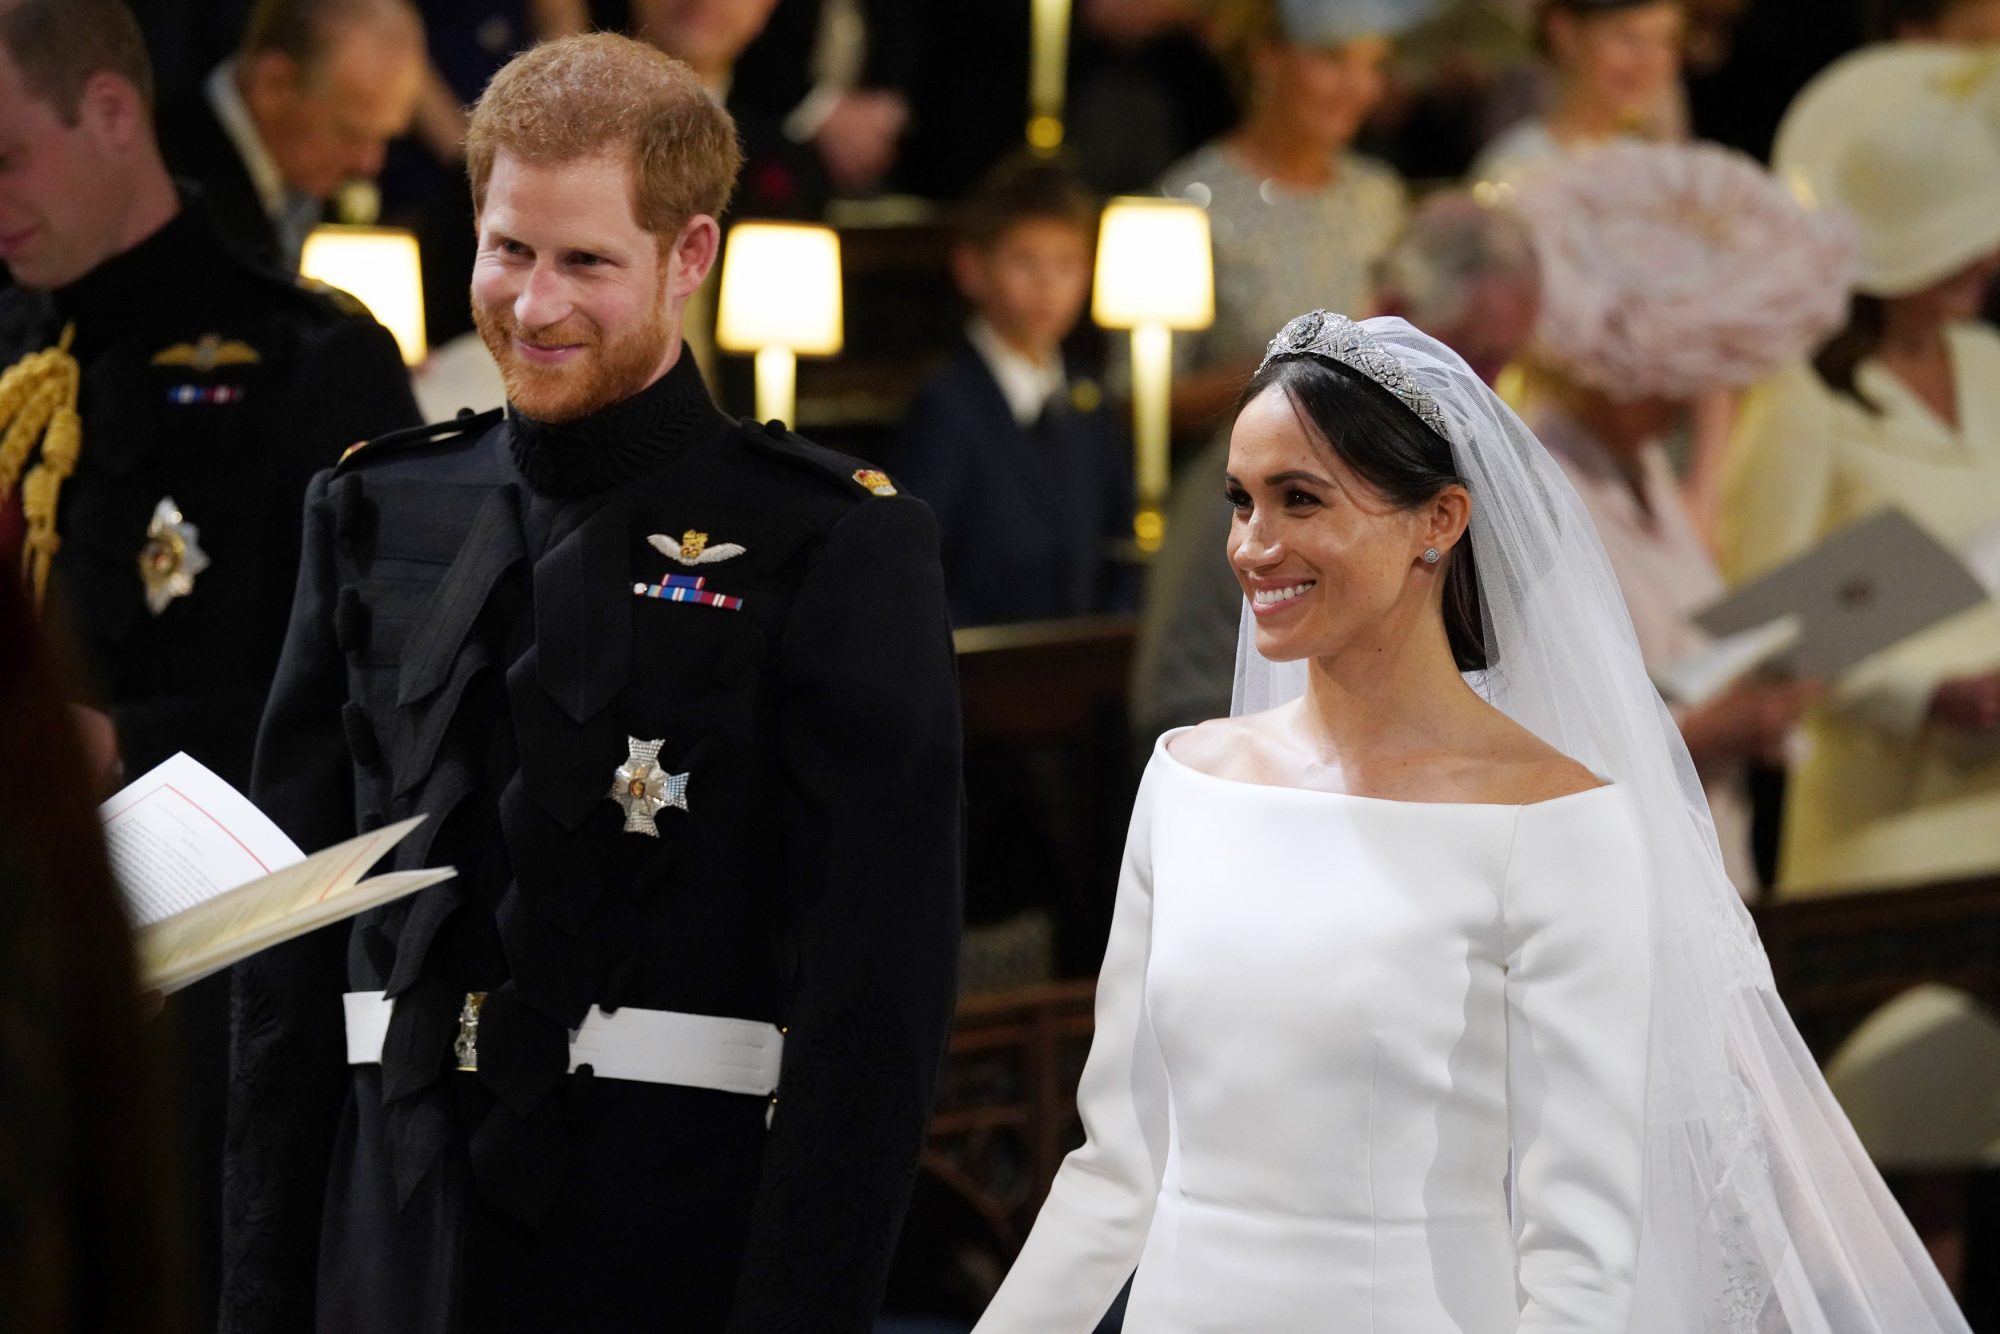 royal wedding prince harry meghan markle marry at windsor castle ew com royal wedding prince harry meghan